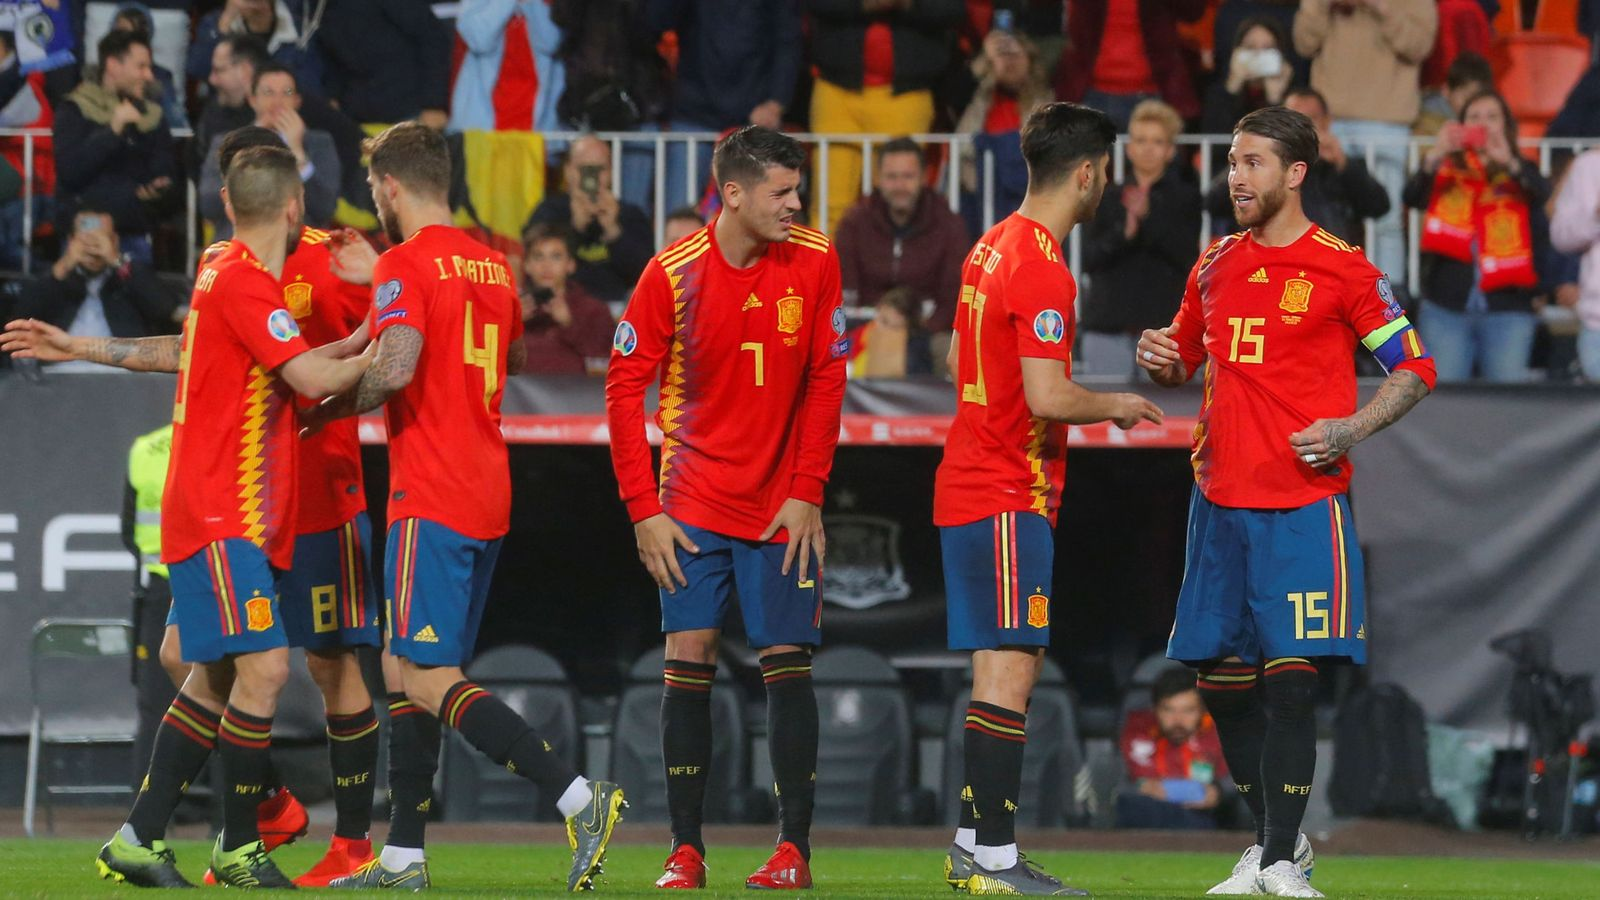 Foto: Euro 2020 qualifier - group f - spain v norway